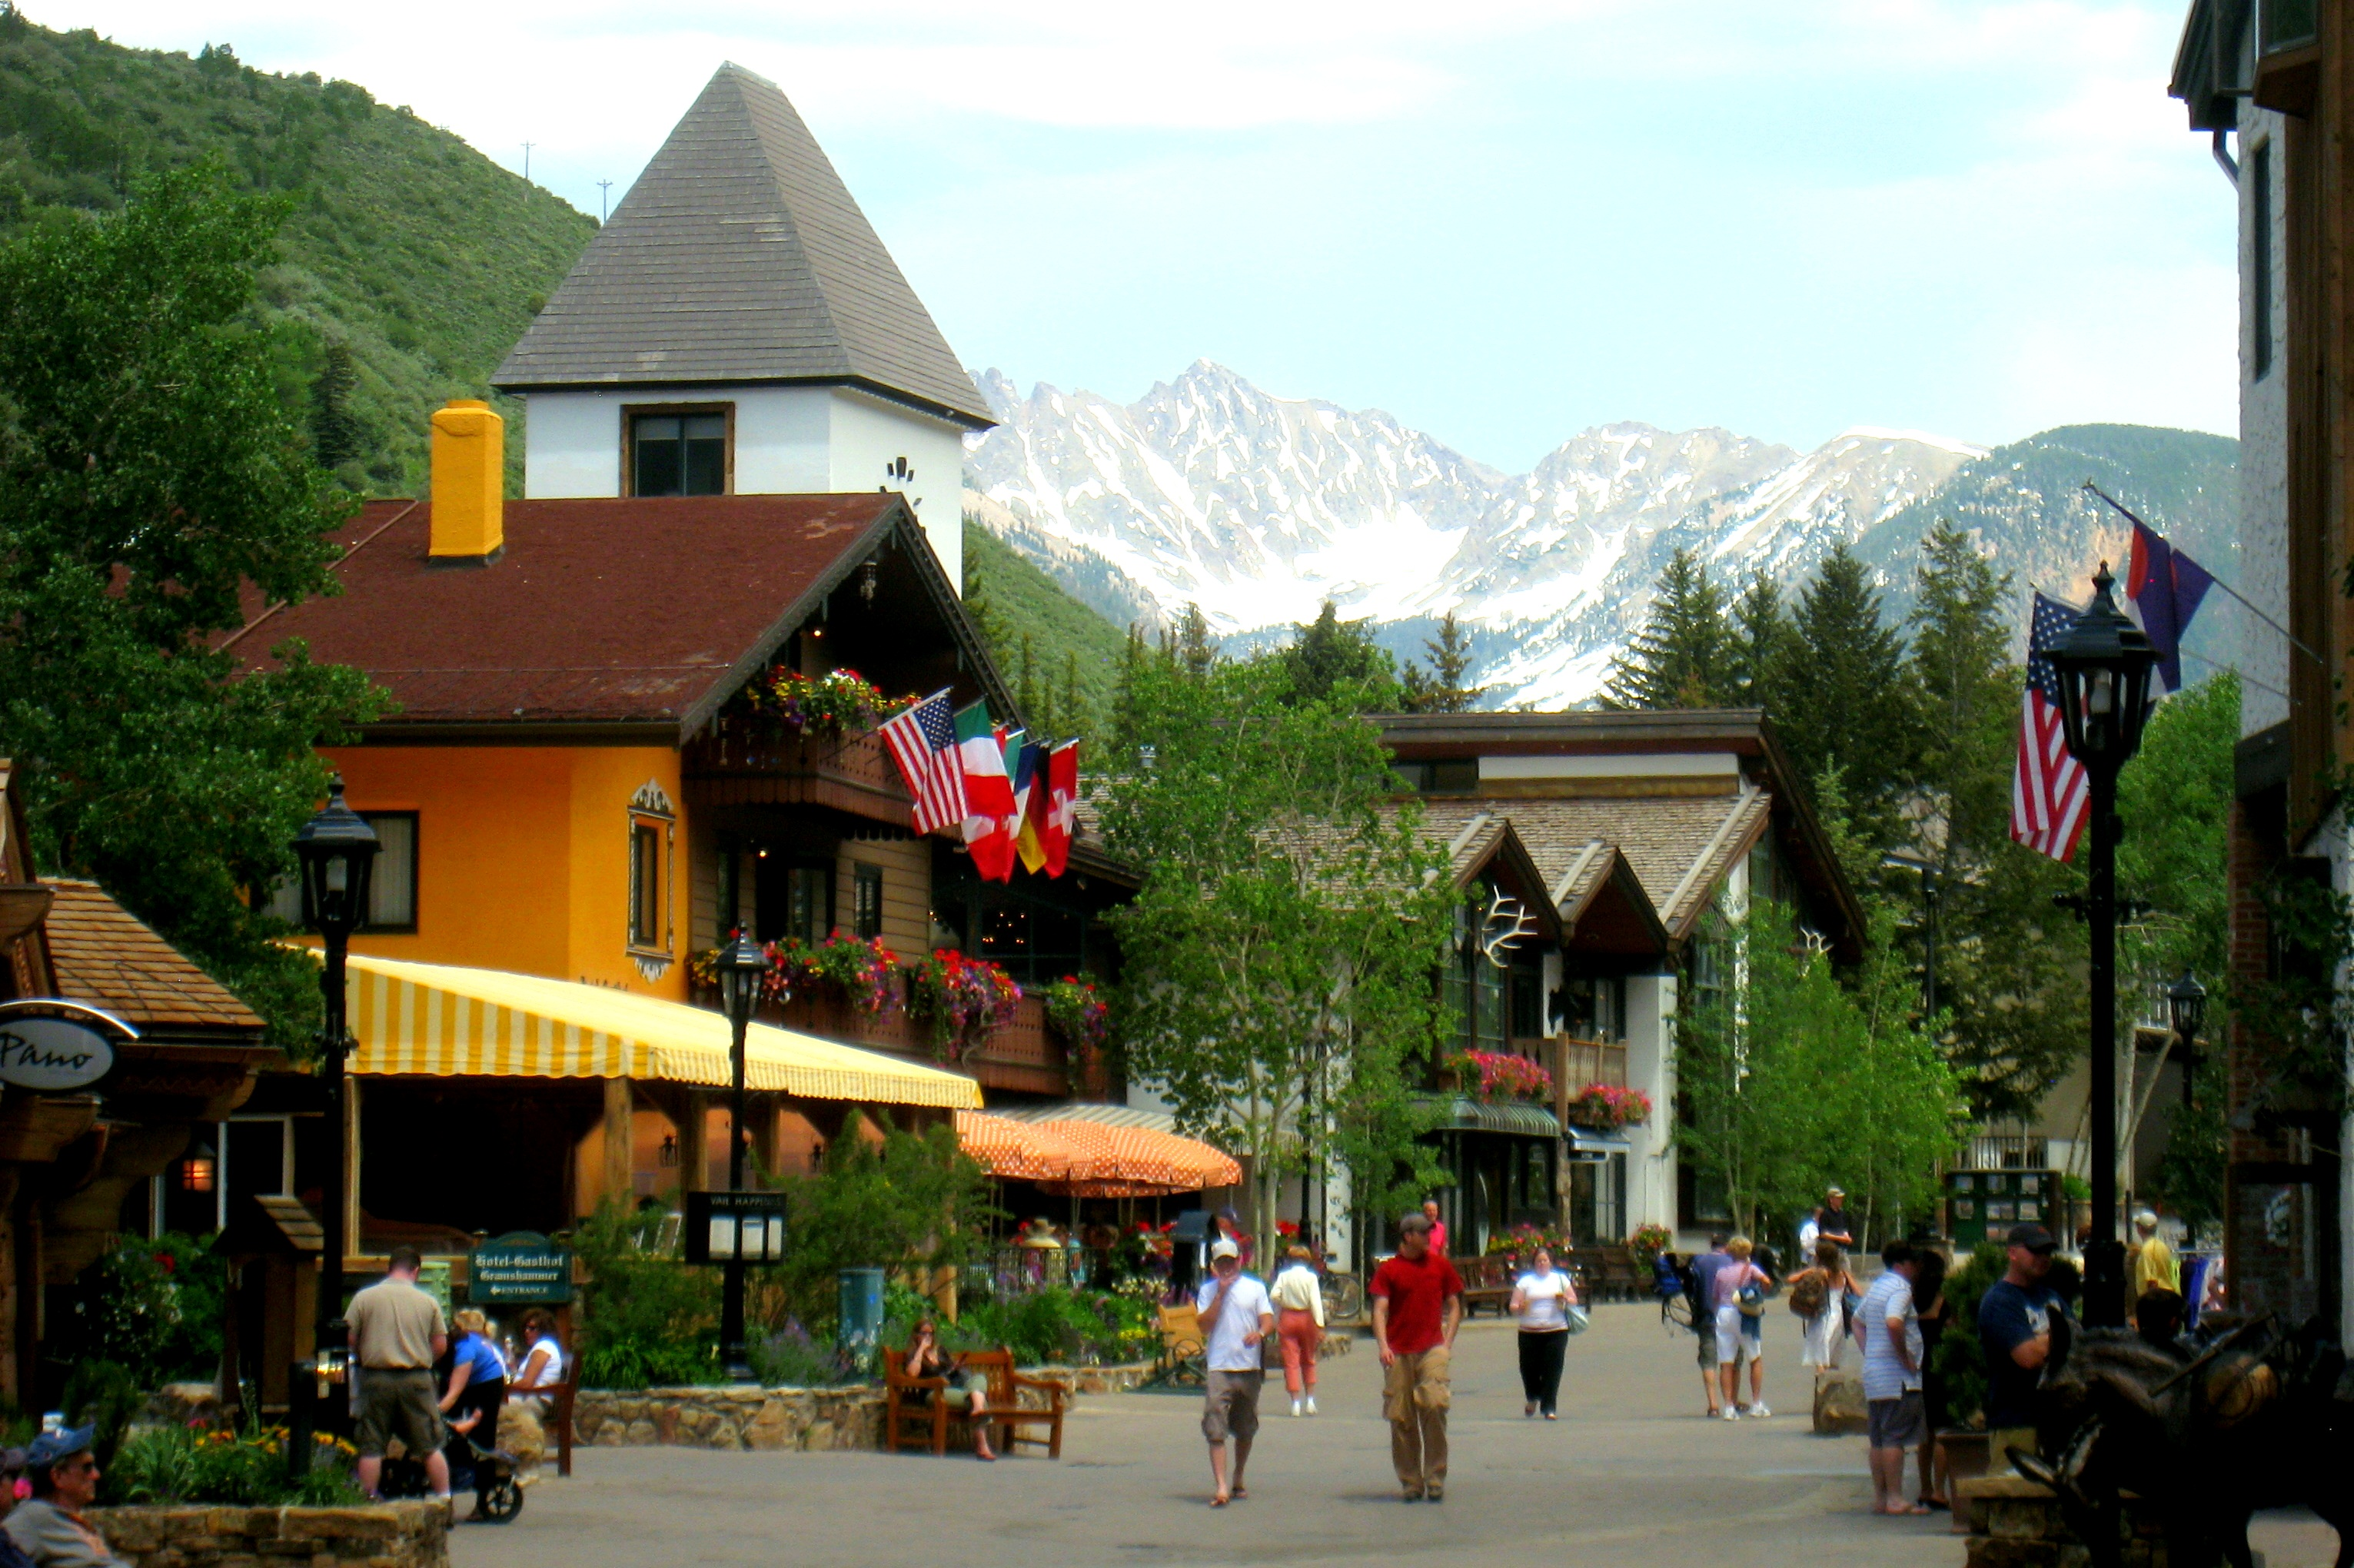 Vail, Colorado - Vail Street View